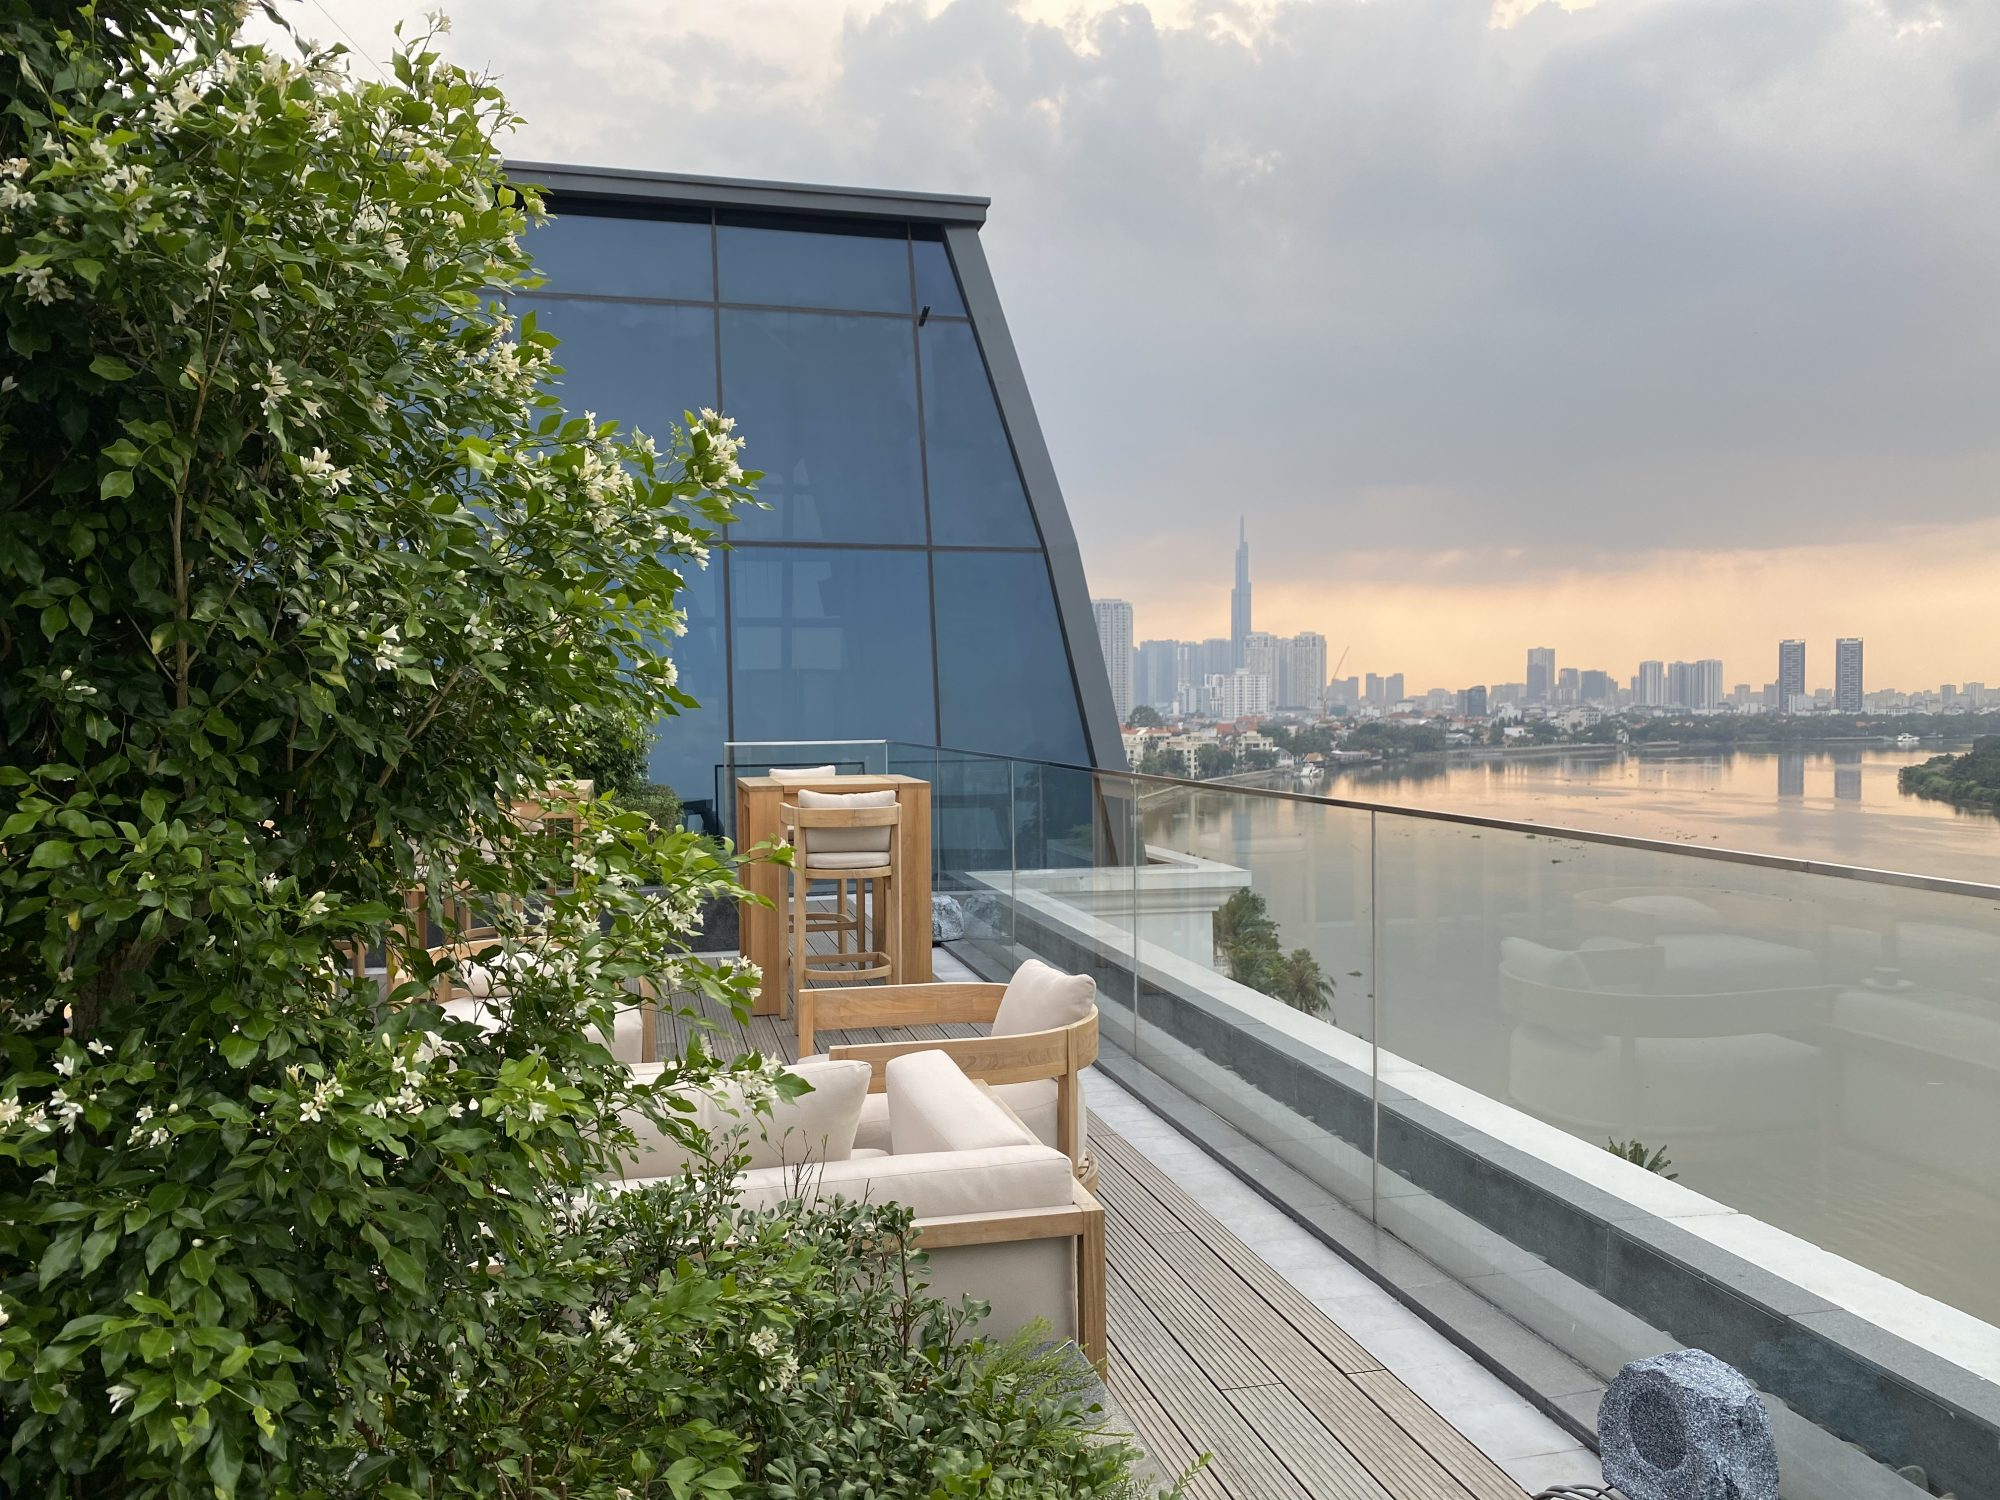 Gin on 8 – The Rooftop Terrace